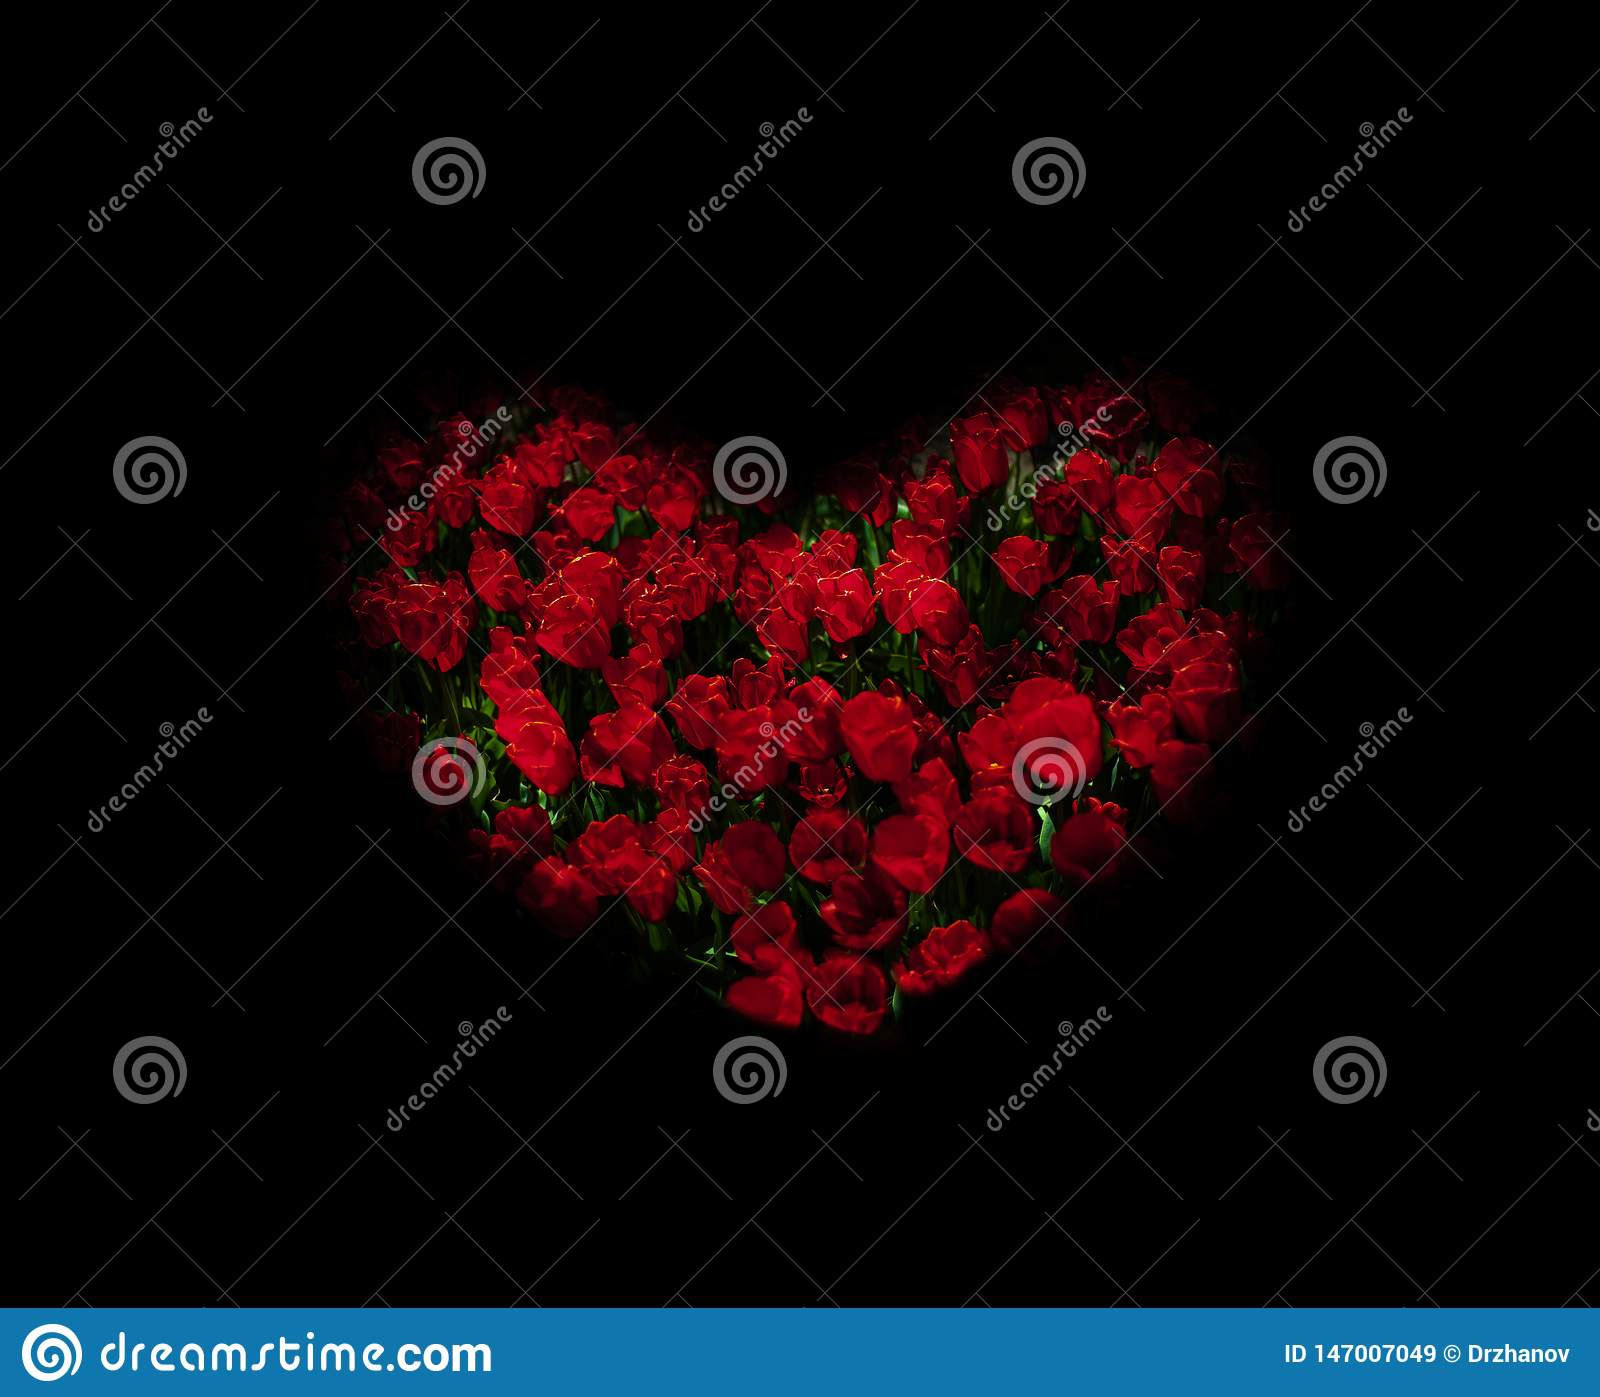 Underexposed red tulips stylized heart shape